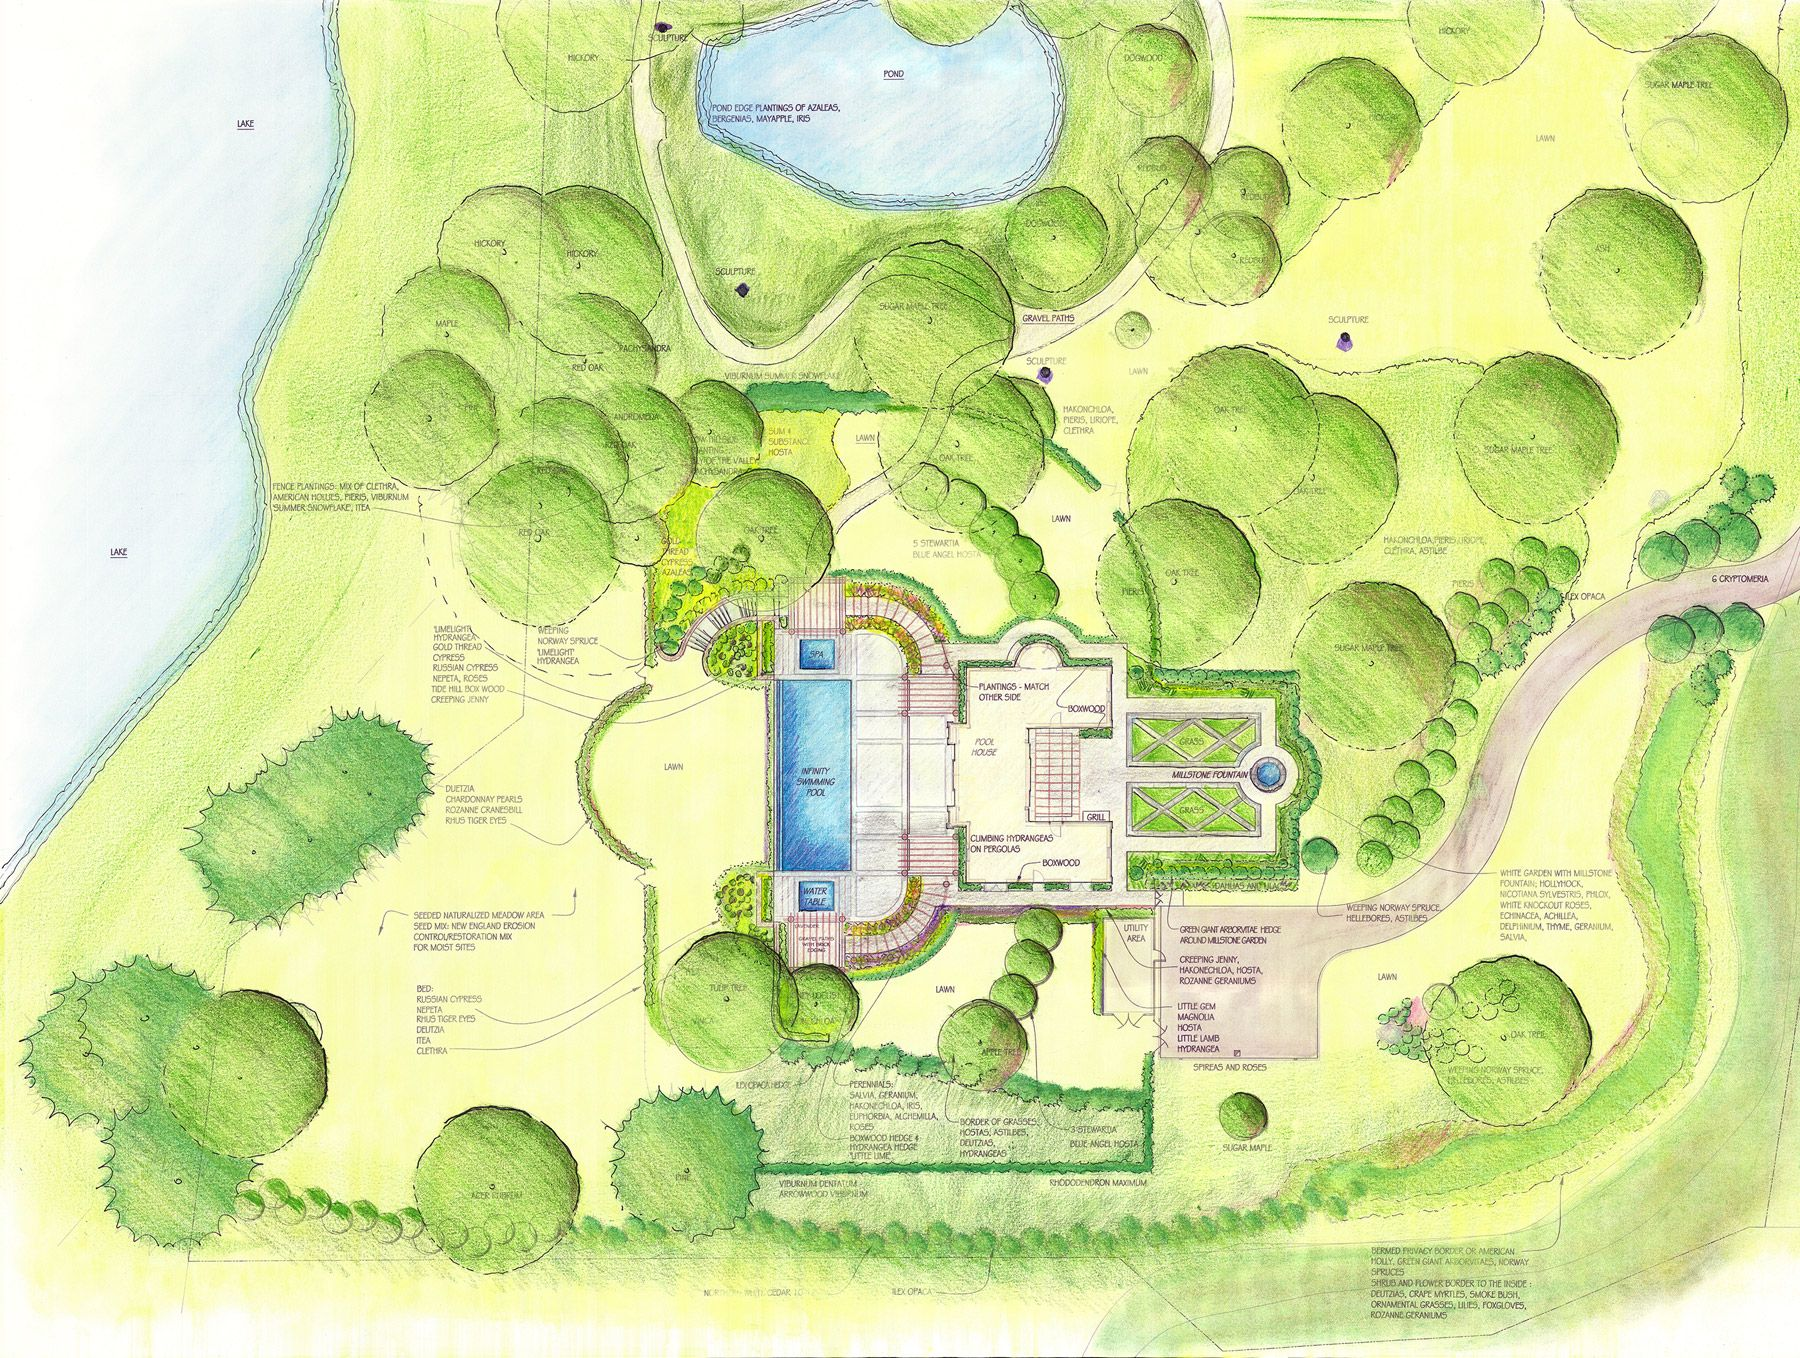 art drawing rendering colored pencil landscape garden design